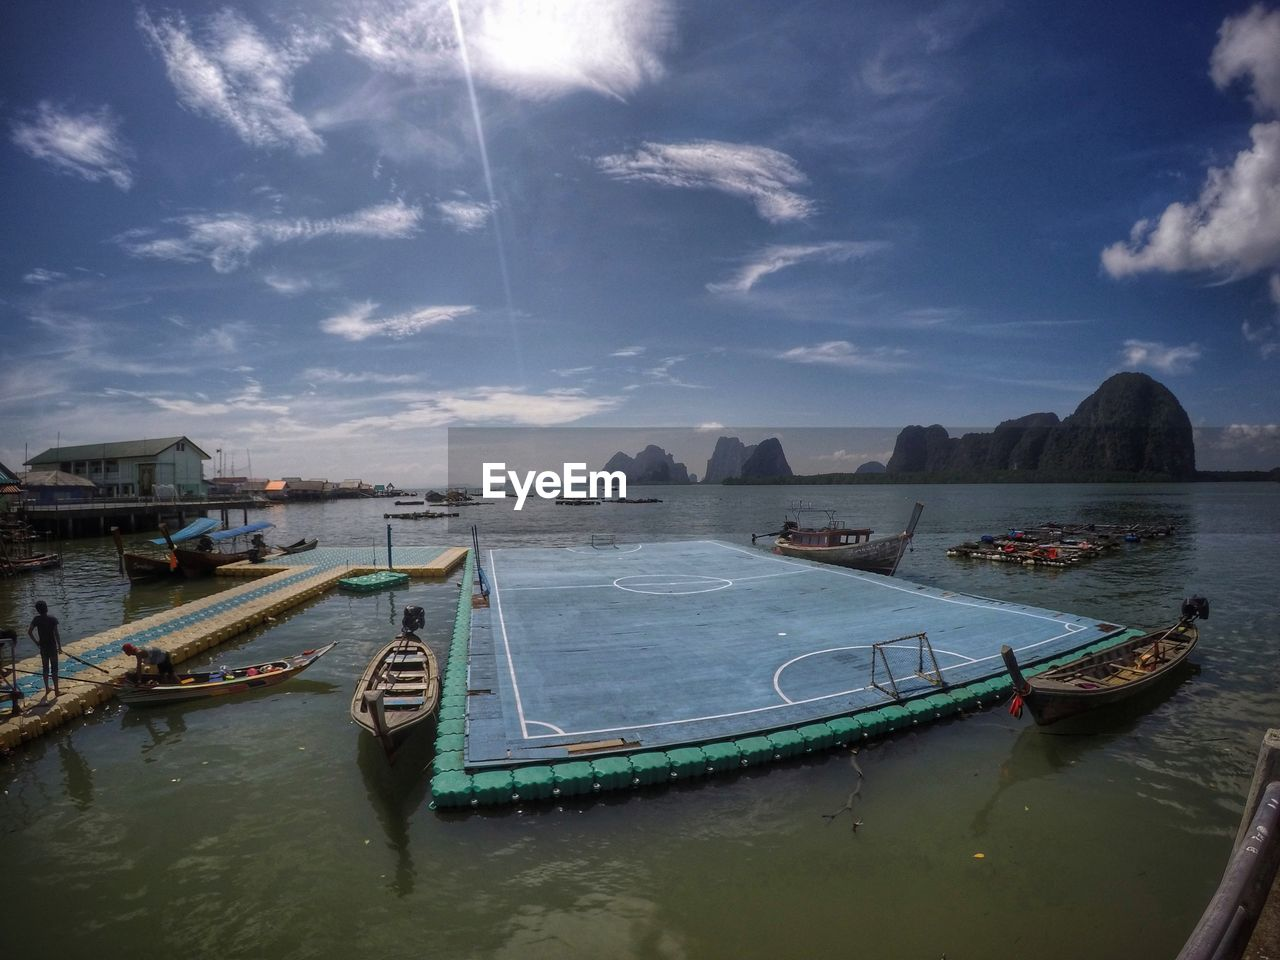 Floating Platform And Boats In Sea Against Sky During Sunny Day